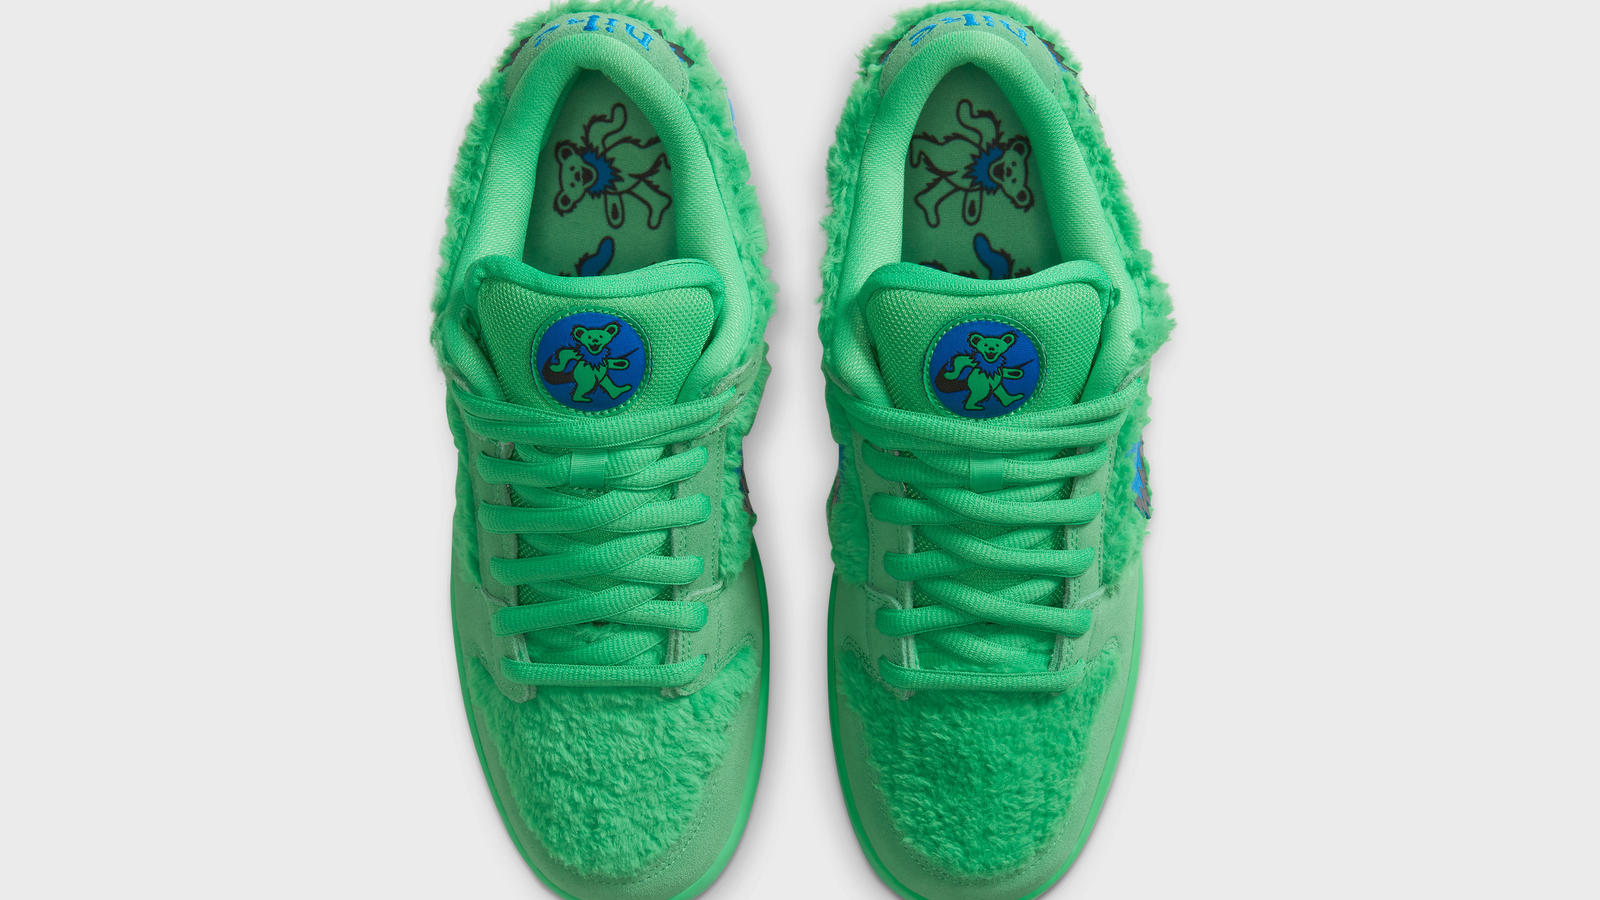 Nike SB Dunk Low Grateful Dead Official Images and Release Date ...